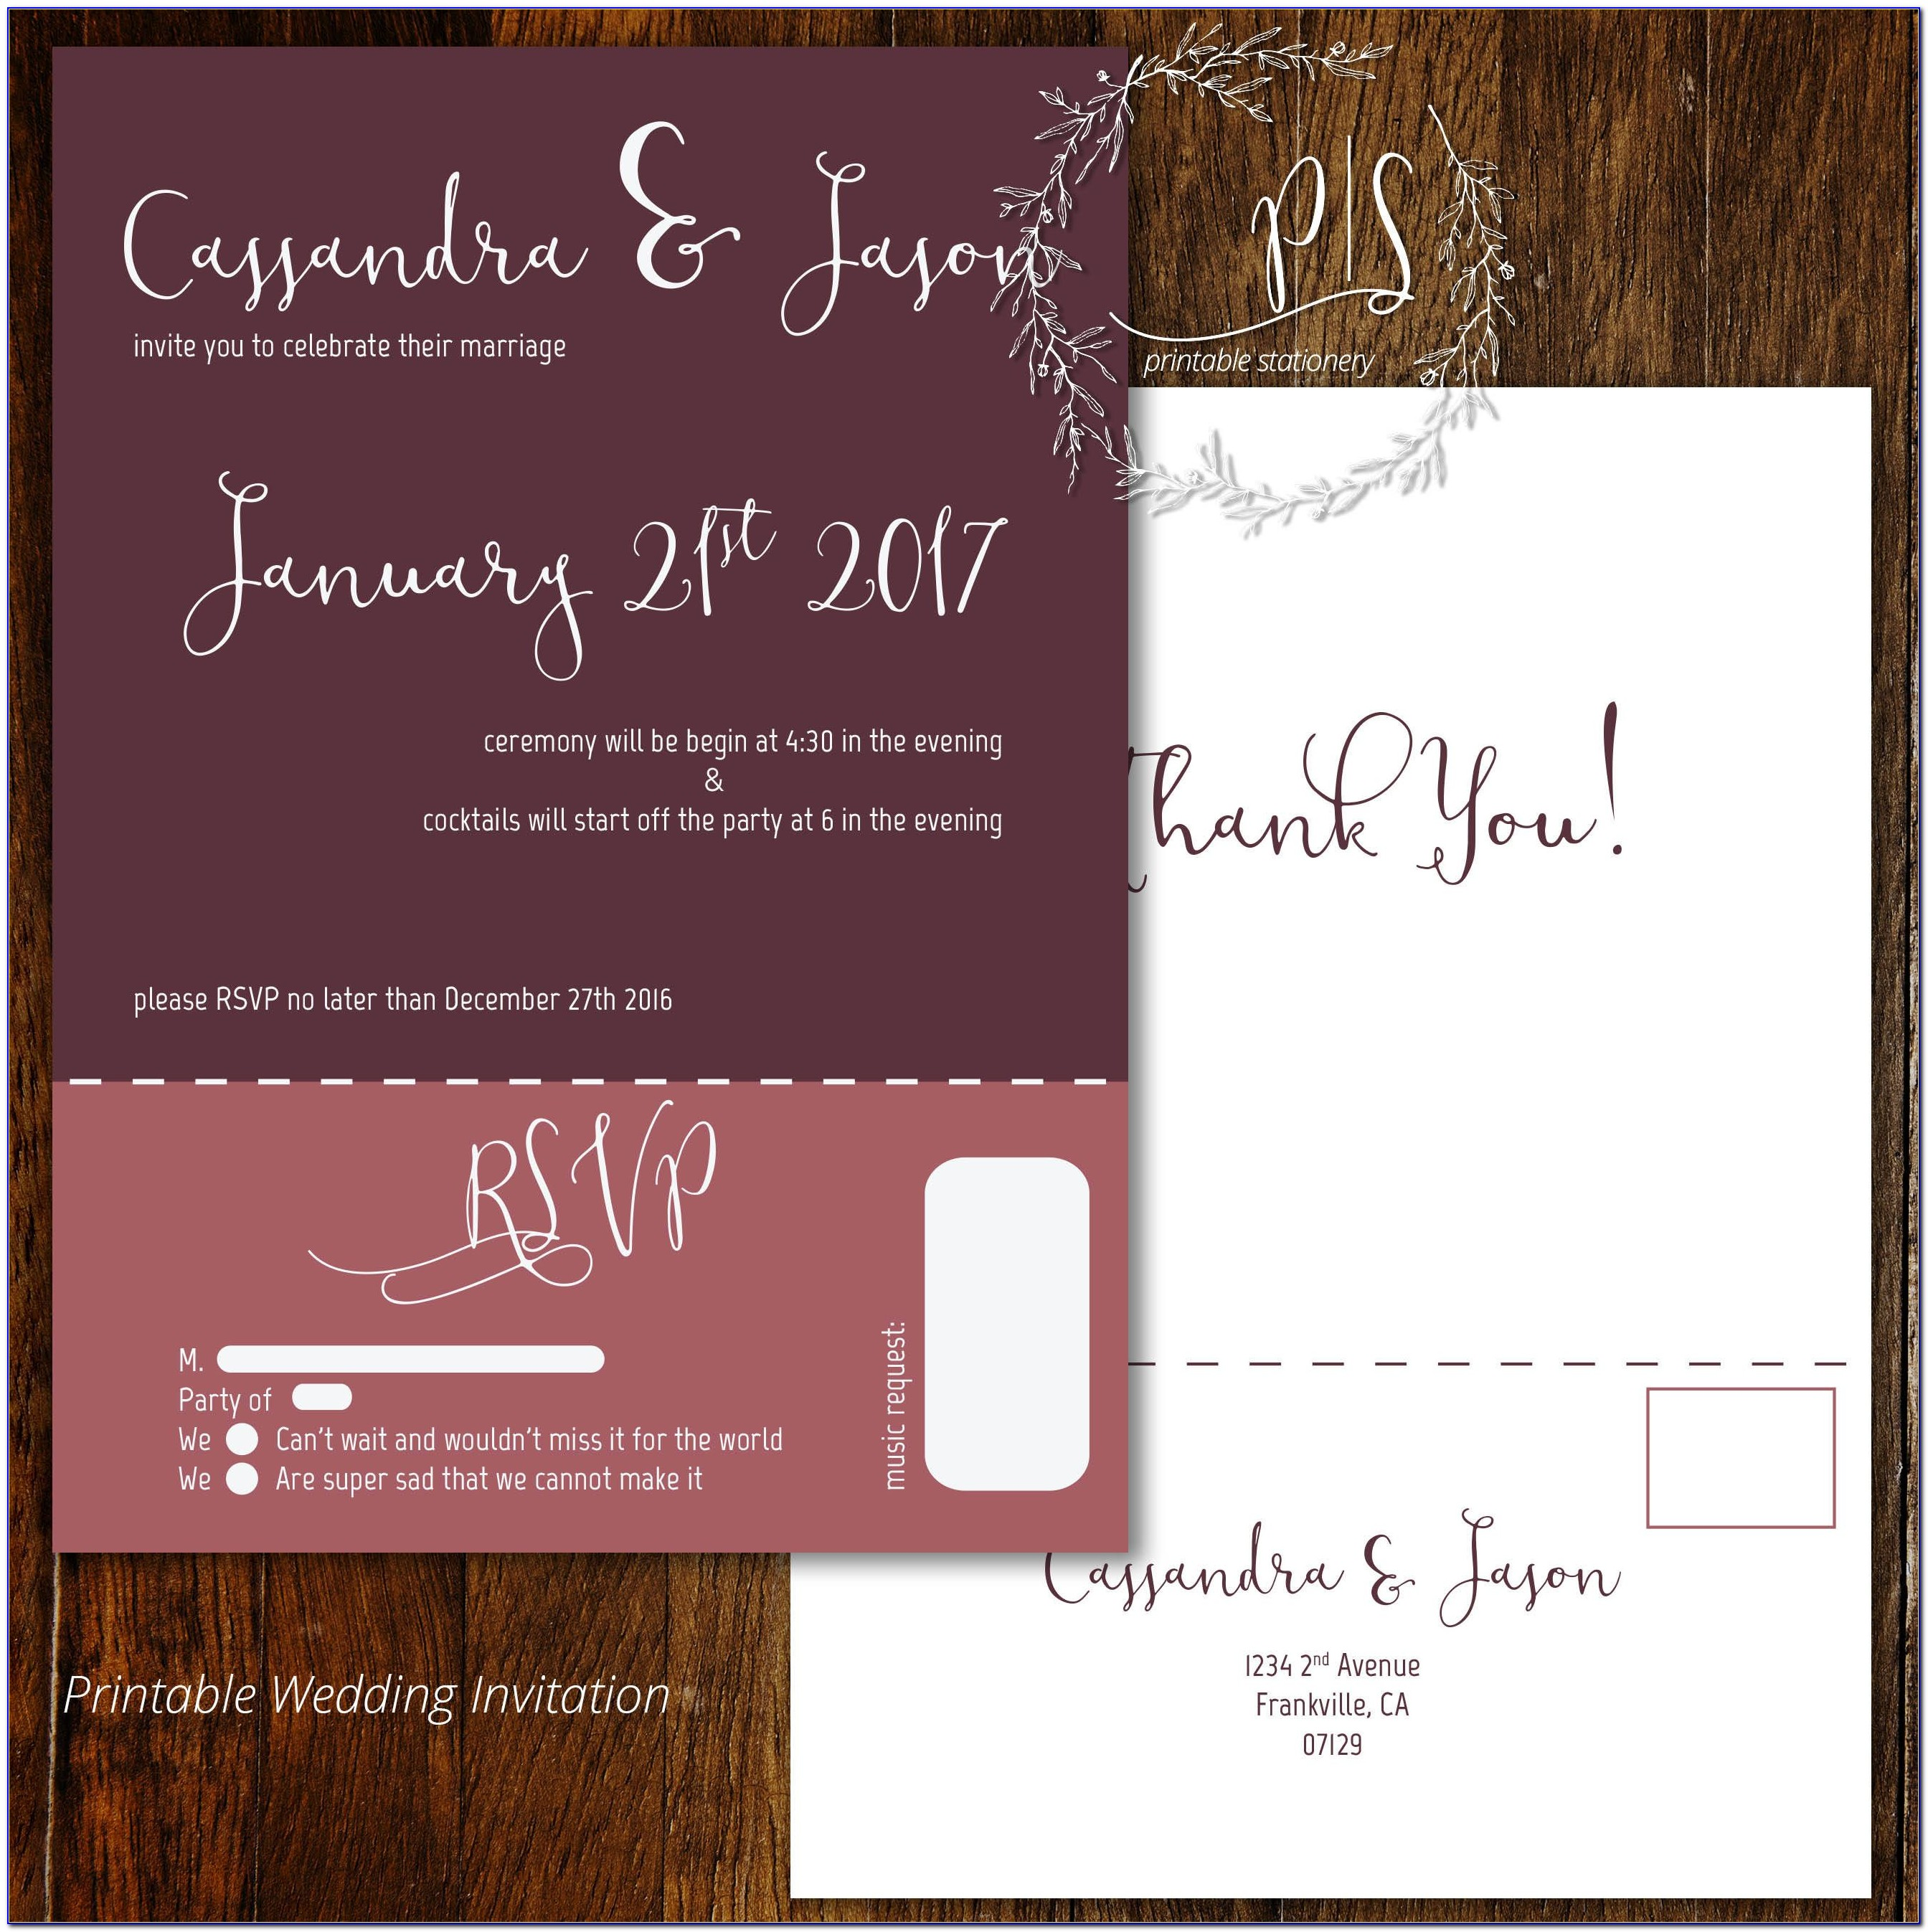 Invitations With Rsvp Attached